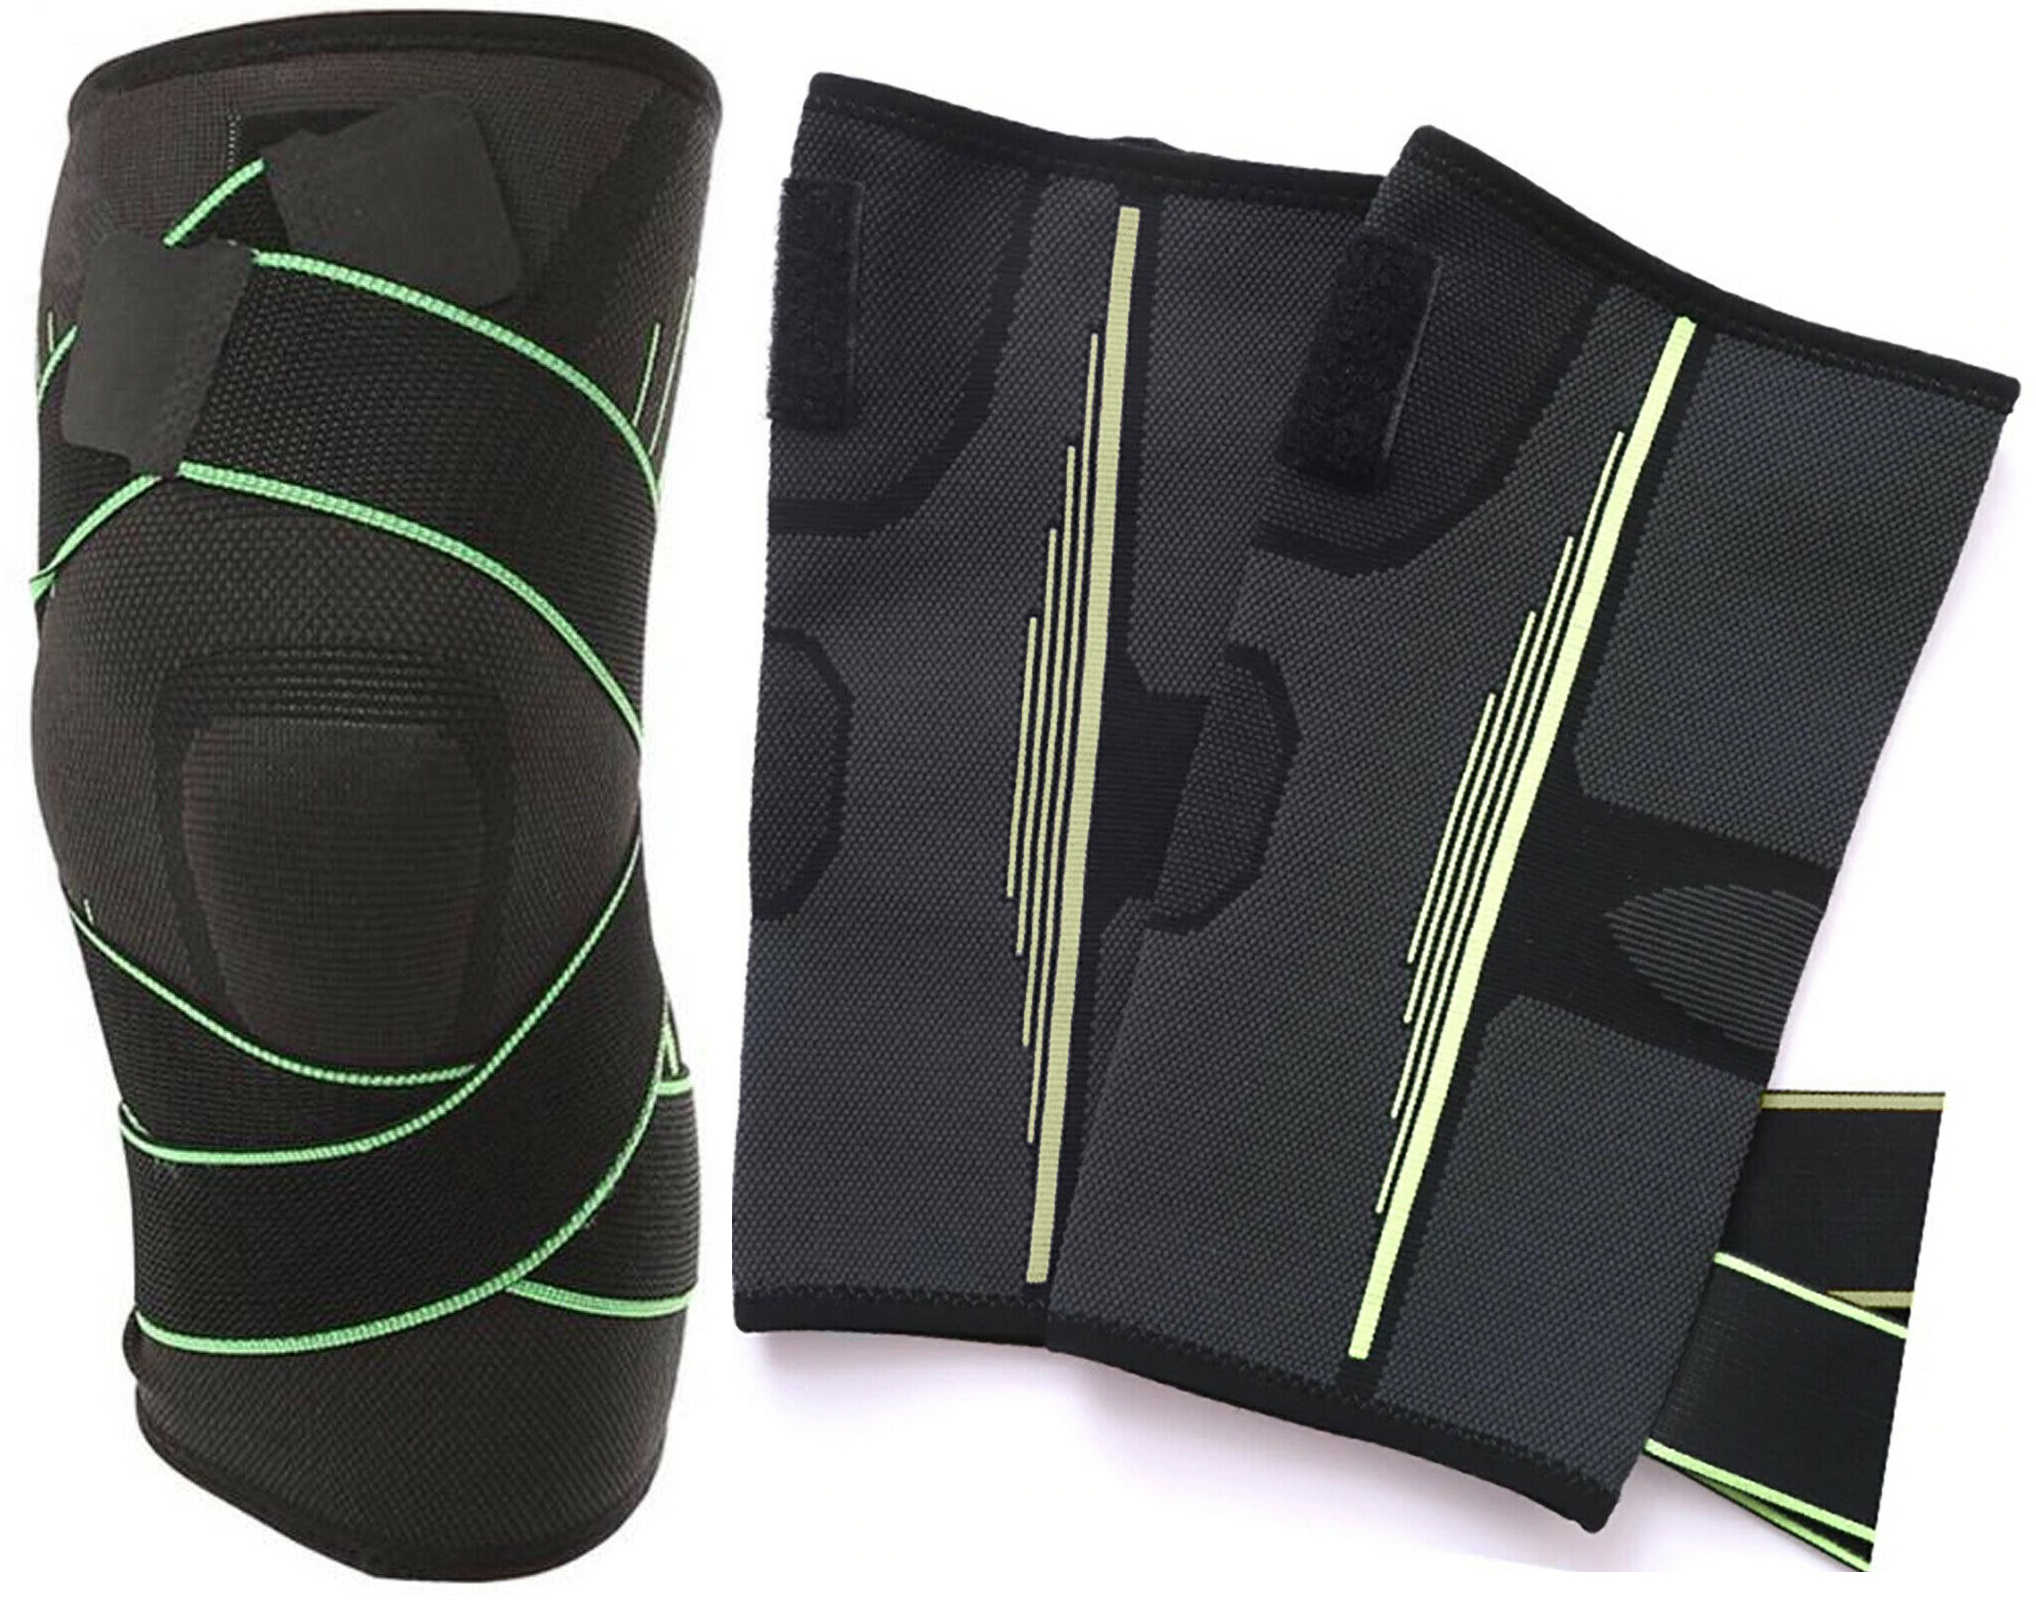 Small Green Knee Support Brace Compression Extra Strap Support Sports Protector Adjustable